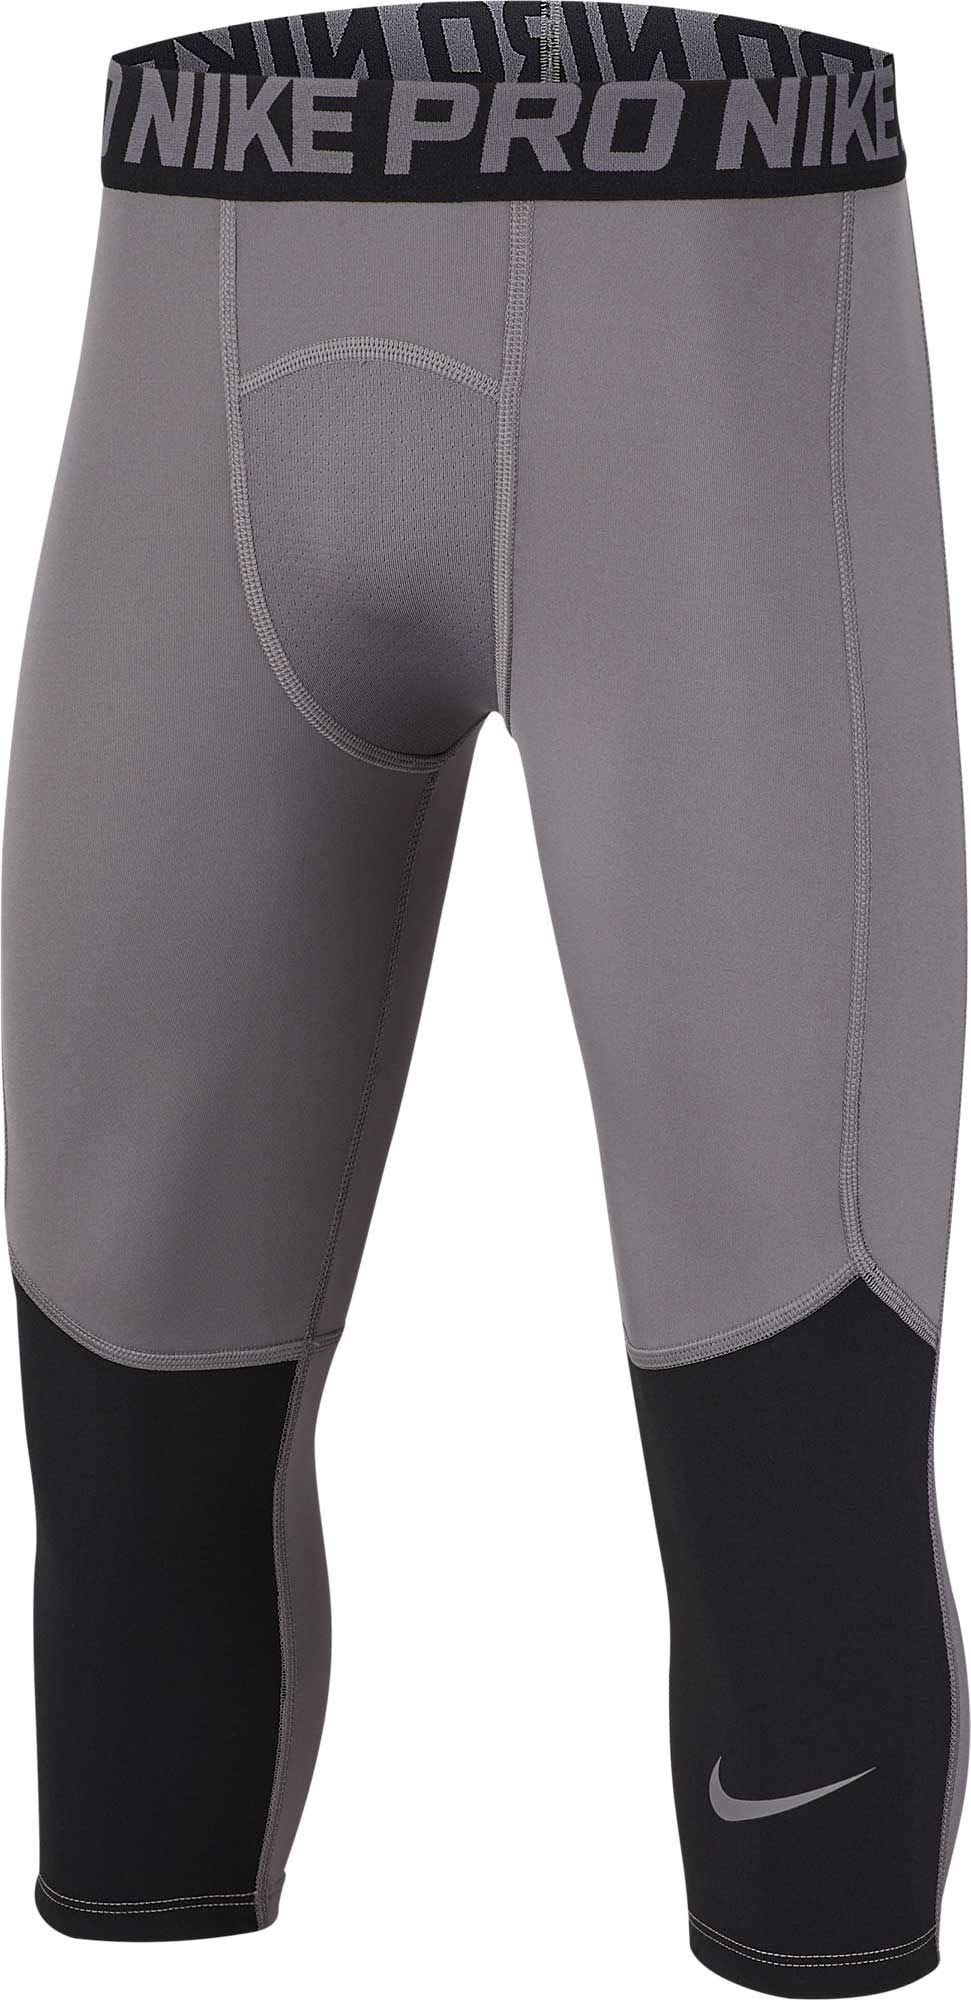 Nike Boys' Pro 3/4 Length Knee Tights - Carbon Heather, Large by Nike